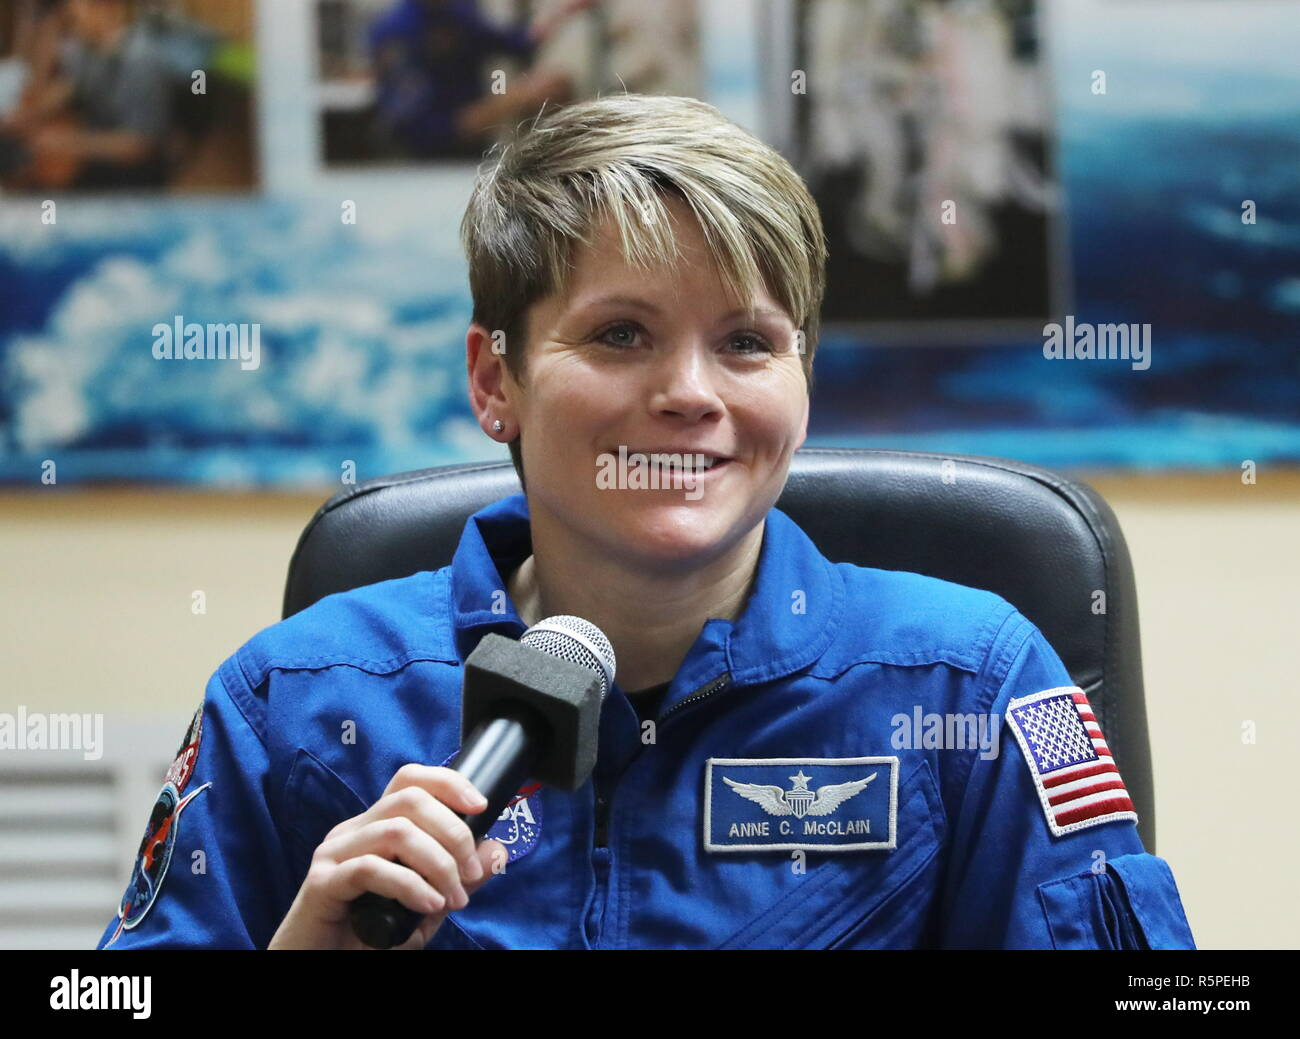 Baikonur, Kazakhstan. 02nd Dec, 2018. KAZAKHSTAN - DECEMBER 2, 2018: ISS Expedition 58 crew member, NASA astronaut Anne McClain of the United States, at a pre-launch press conference at the Baikonur Cosmodrome; the launch of the Soyuz MS-11 spacecraft crew to the International Space Station (ISS) is scheduled for December 3, 2018, 14:31 Moscow time. Sergei Savostyanov/TASS Credit: ITAR-TASS News Agency/Alamy Live News - Stock Image